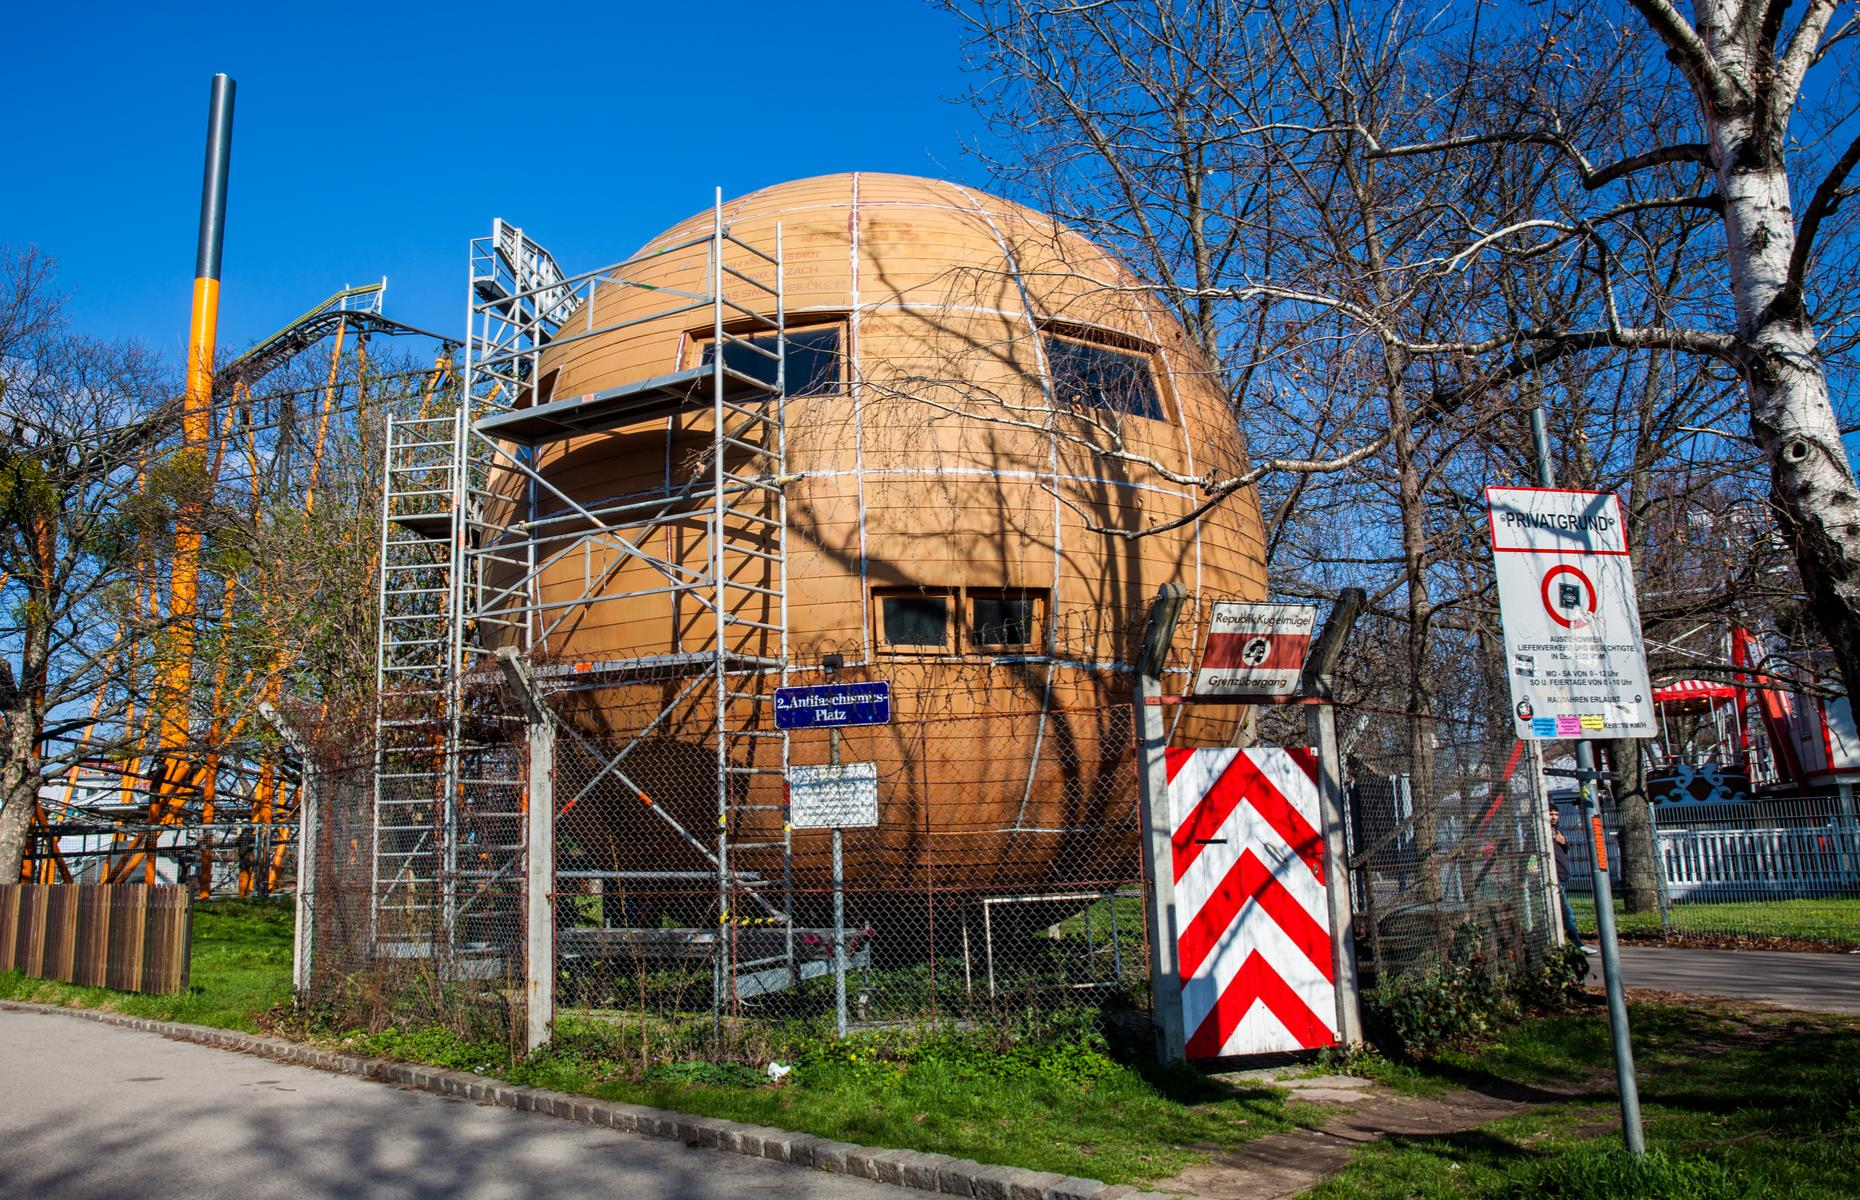 Slide 9 of 26: Located in Prater park in Austria's capital of Vienna, this ball-shaped house was proclaimed a republic in 1982 after a dispute between artist Edwin Lipburger and the authorities over its building permit. When Lipburger first built it 11 years earlier without permission in Lower Austria, he was arrested and sent to jail for 10 weeks.